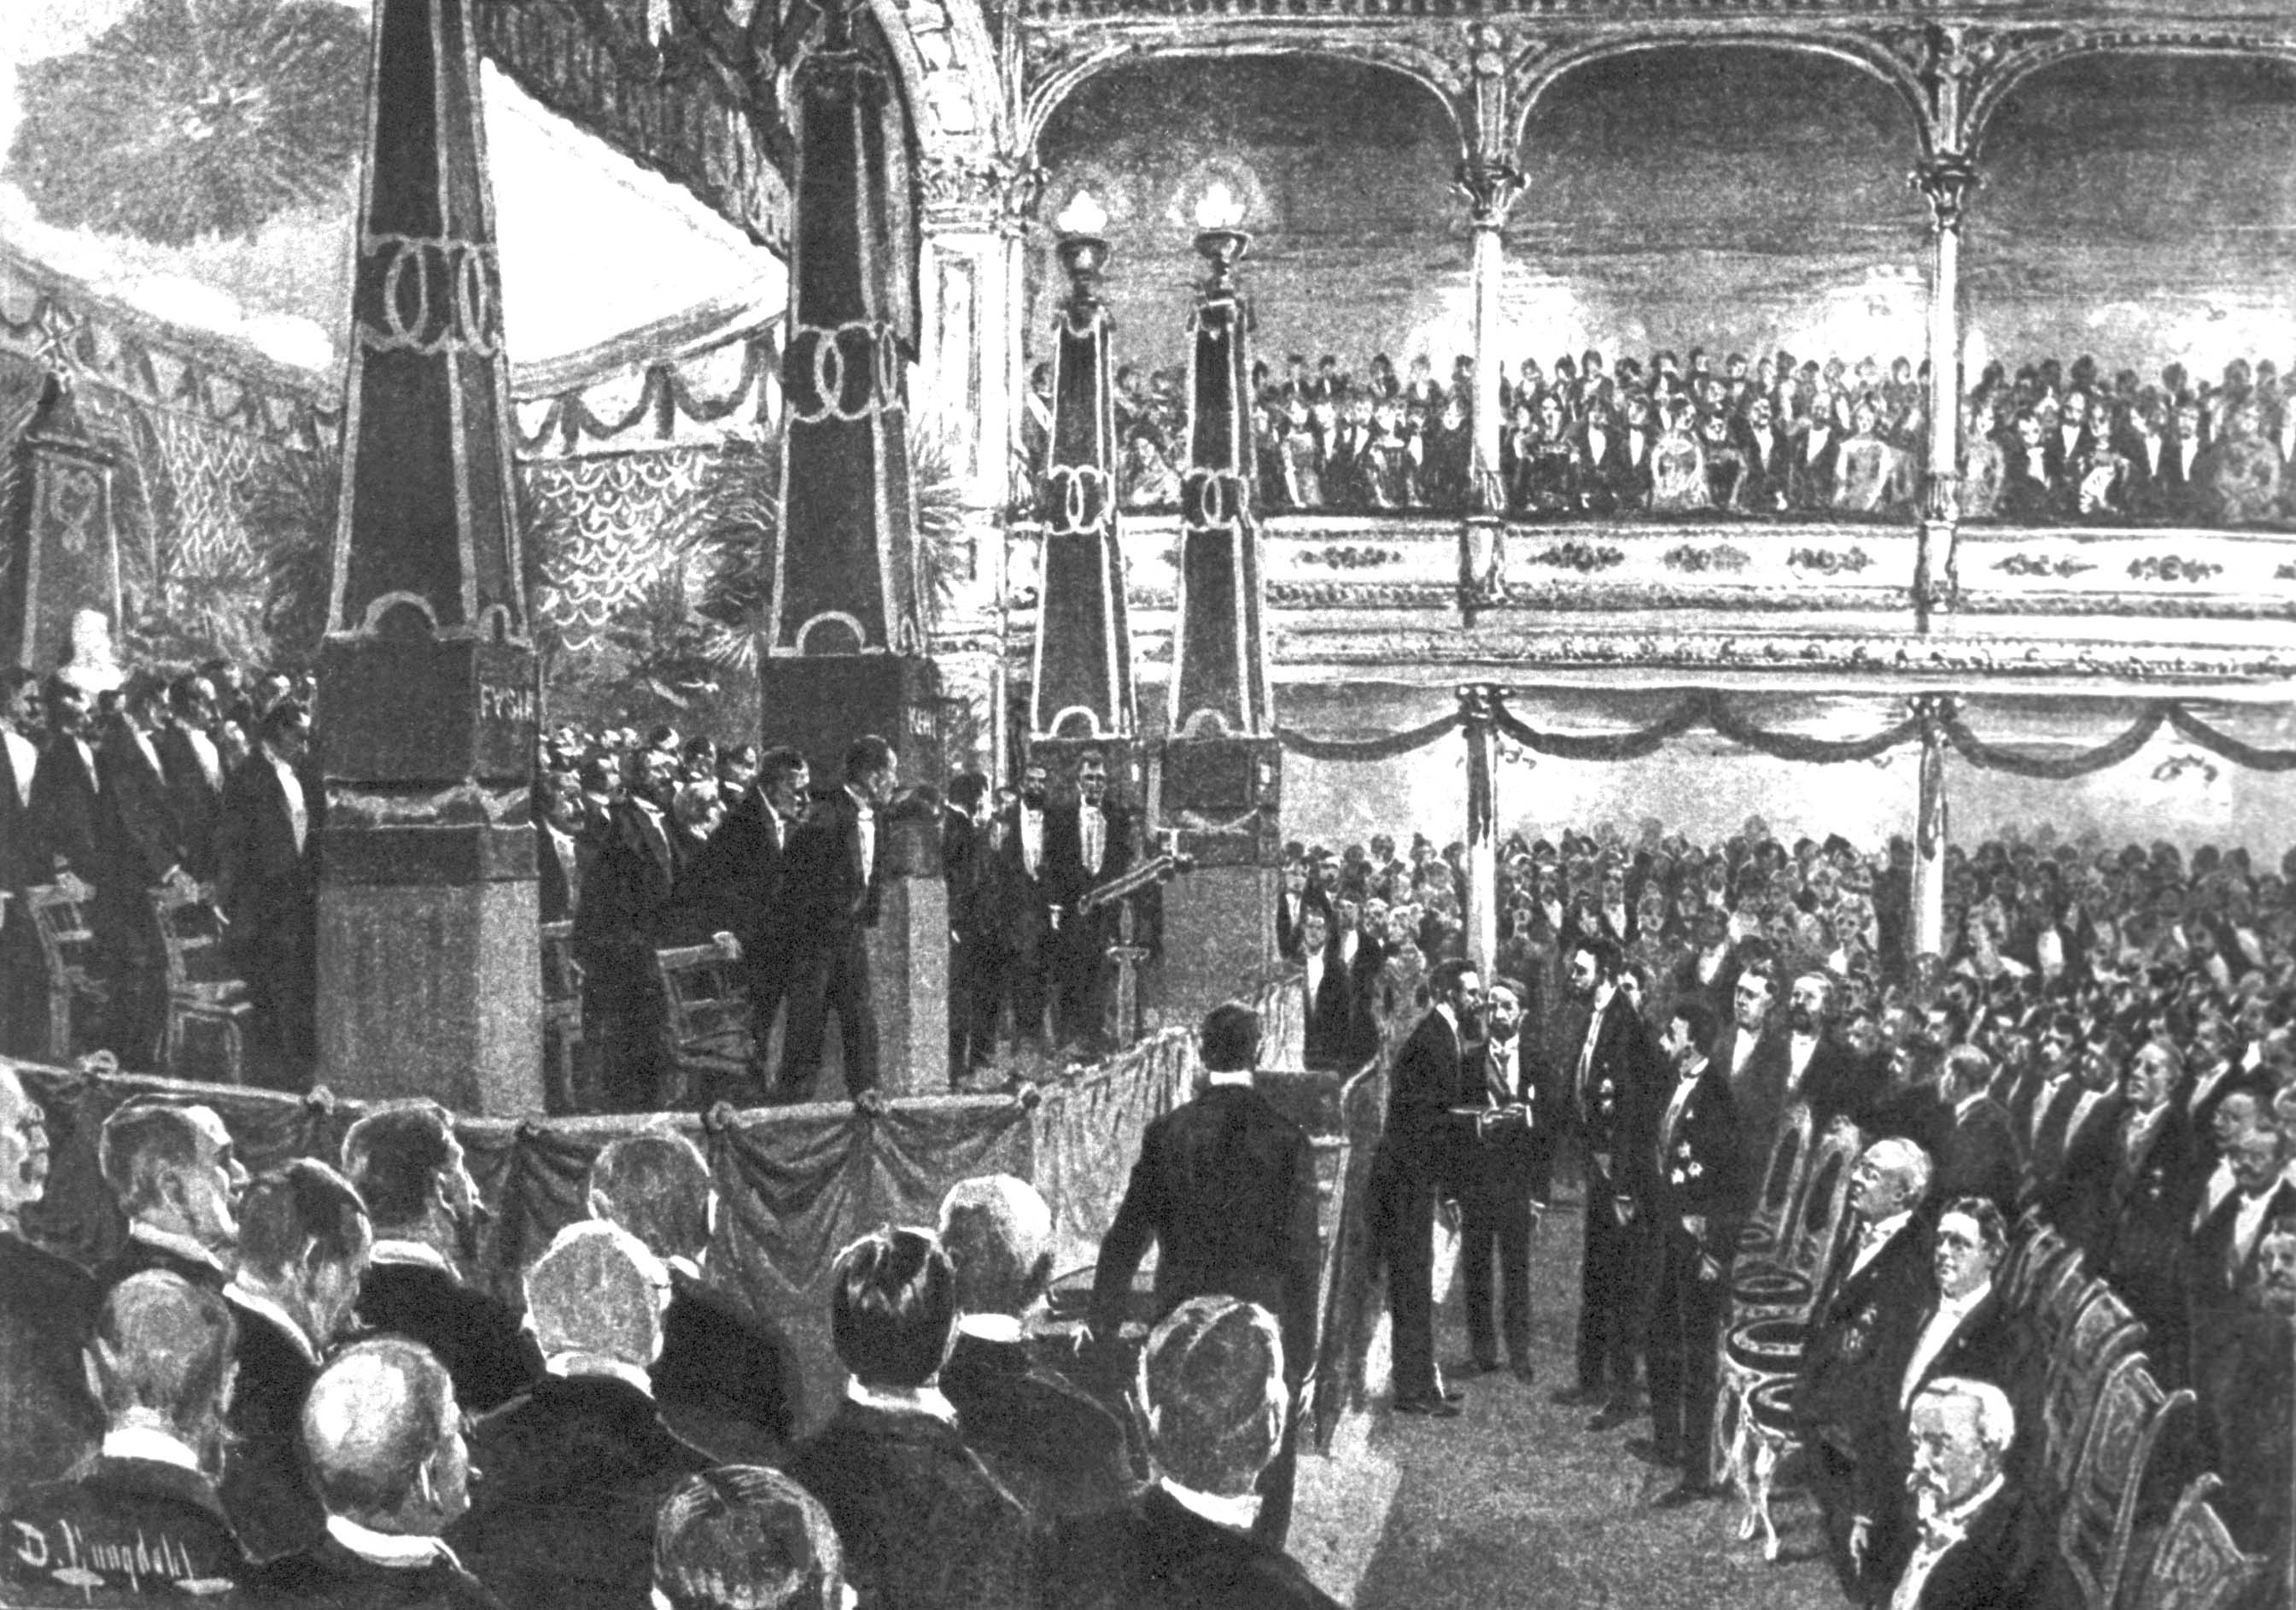 First Prize Award Ceremony 1901© The Nobel Foundation